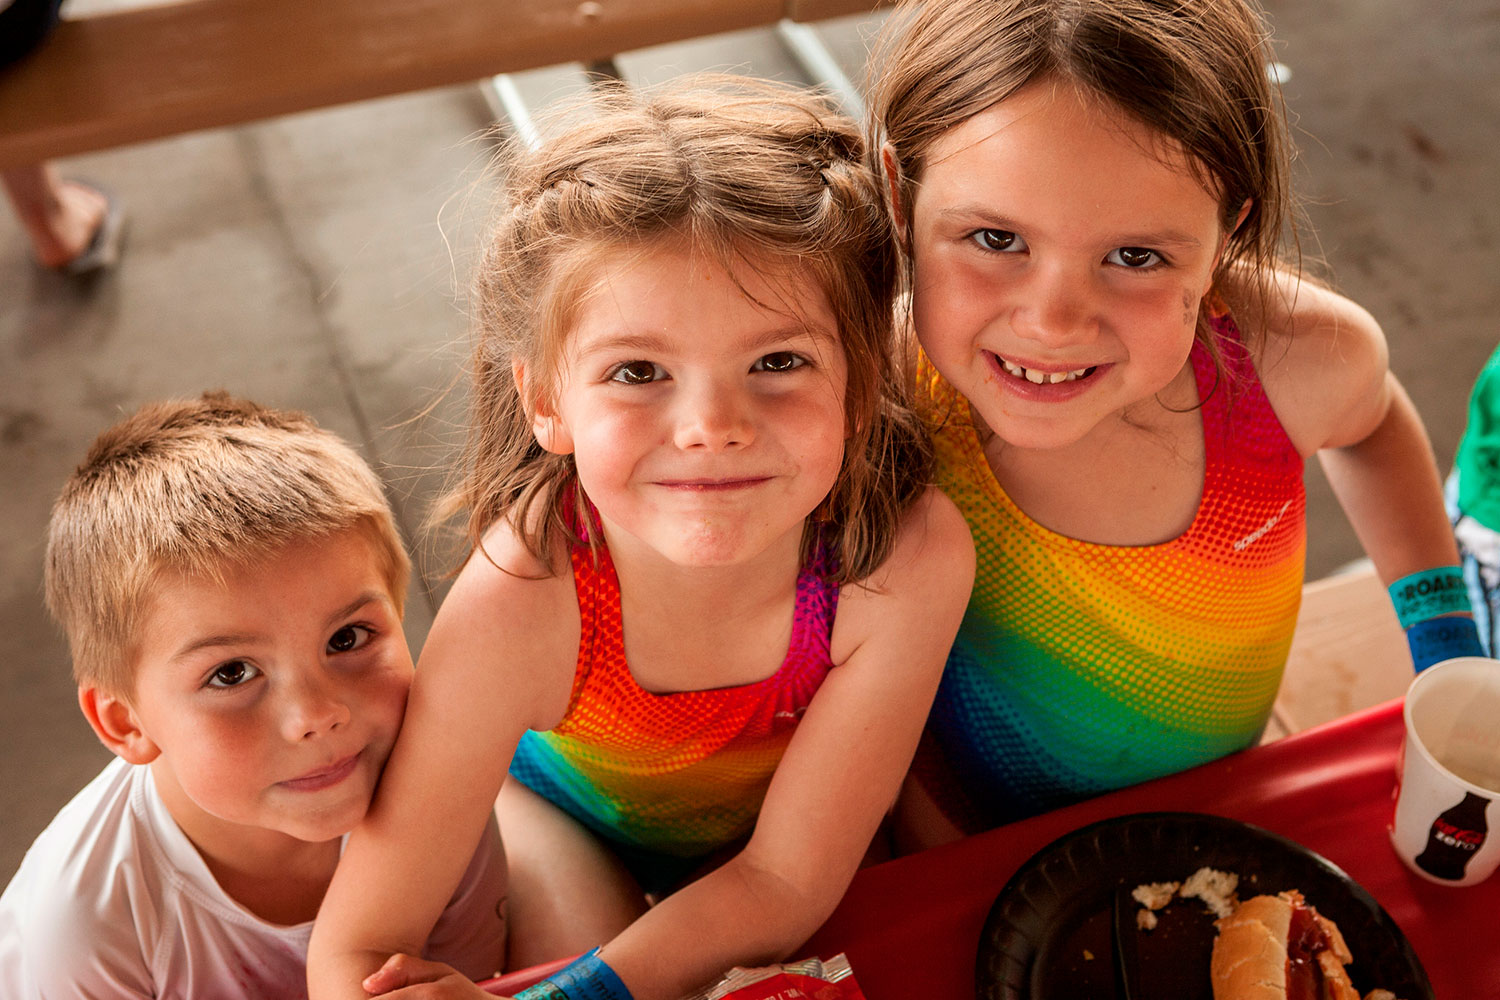 Two young girls and a boy eating